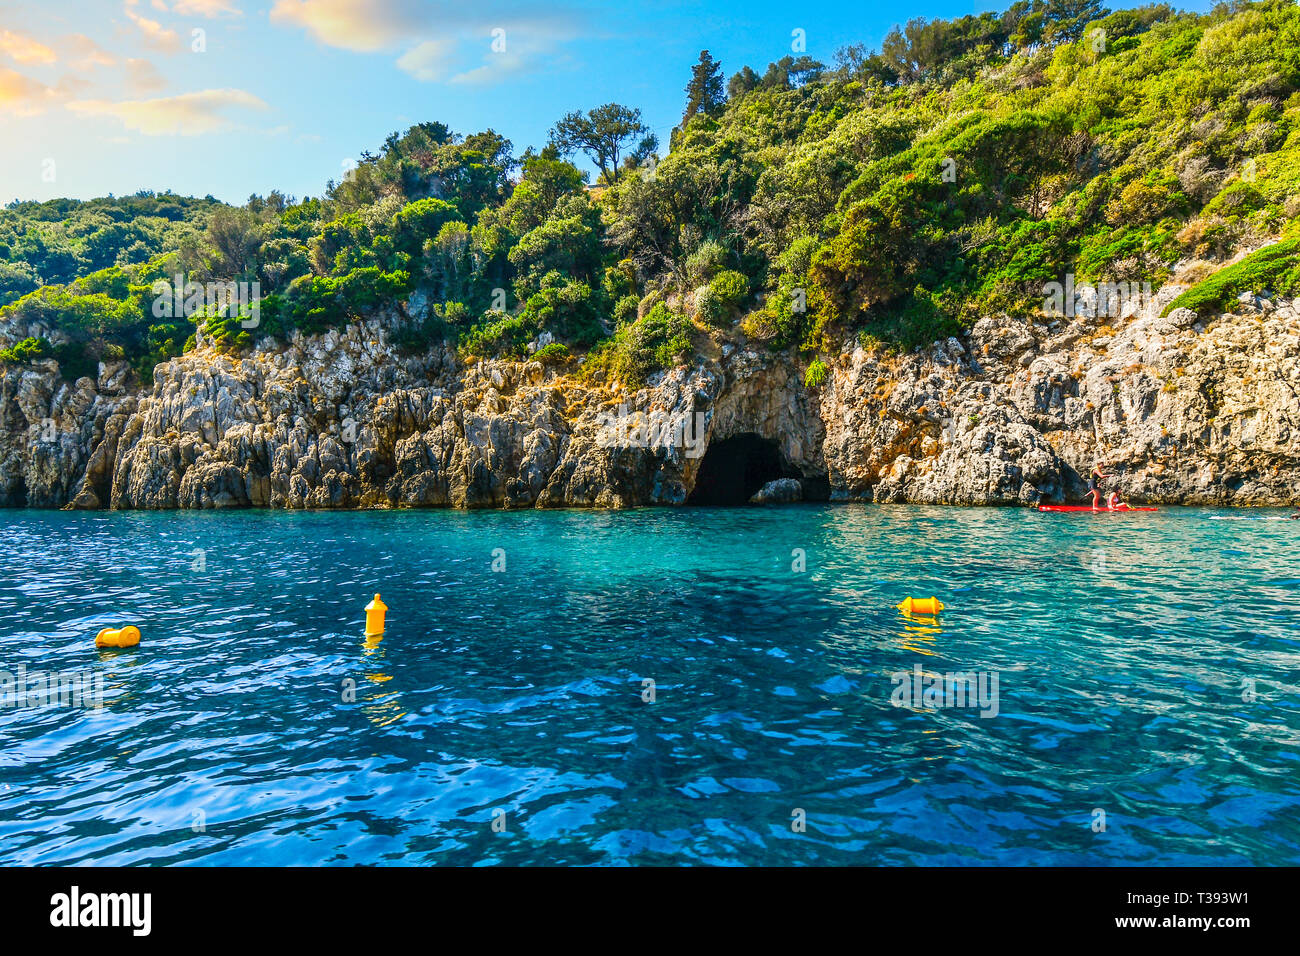 Two young women paddle board past the blue cave on the coast of the Greek island of Corfu on the Aegean Sea Stock Photo